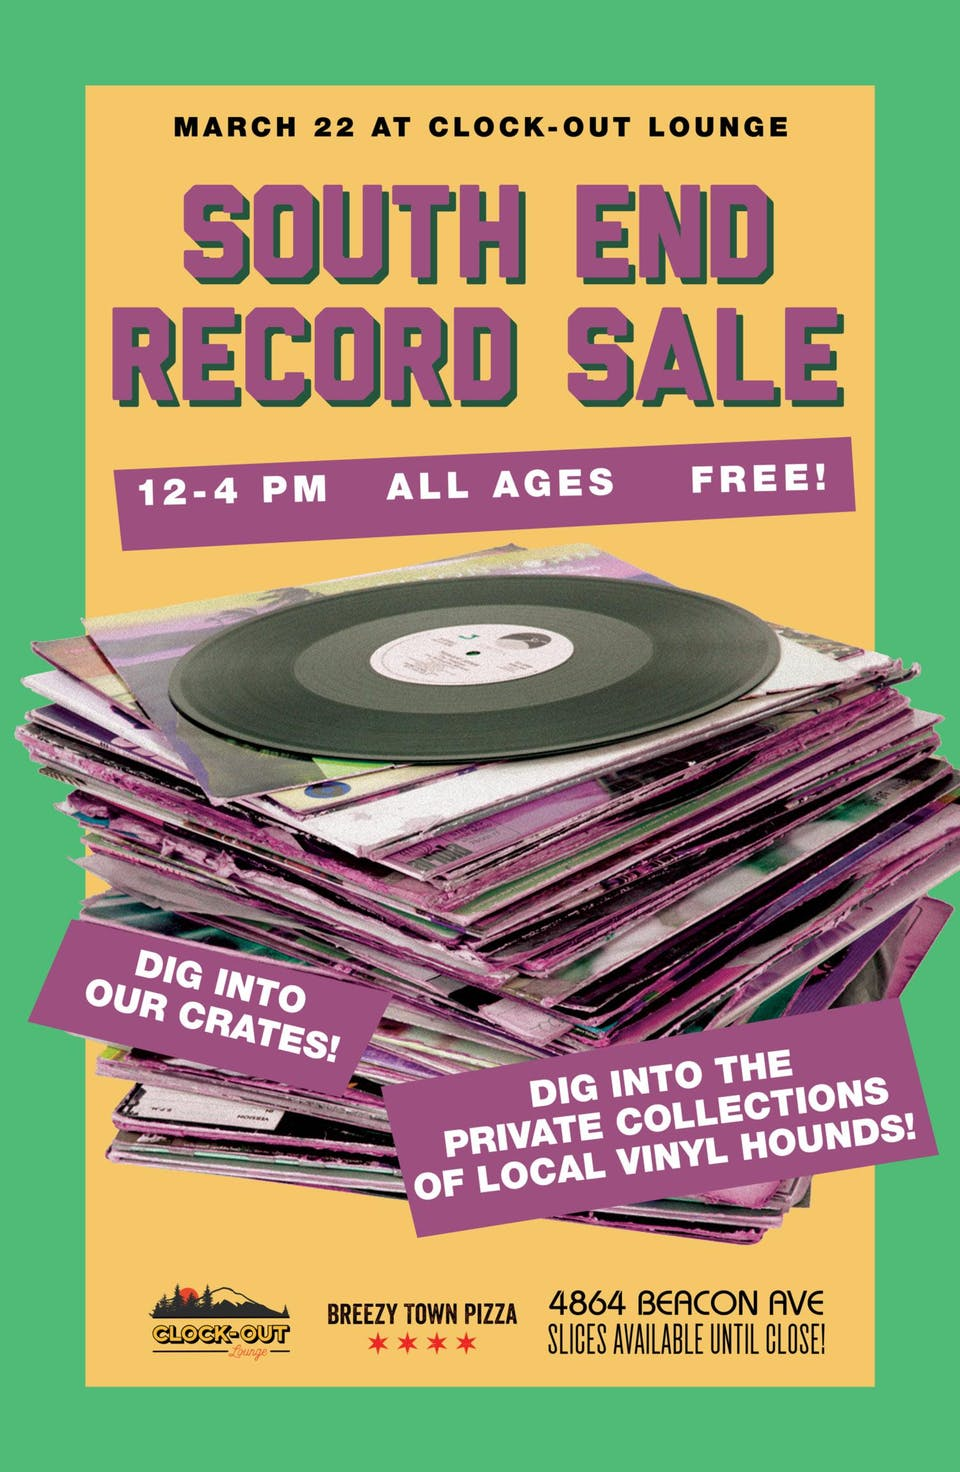 South End Record Sale